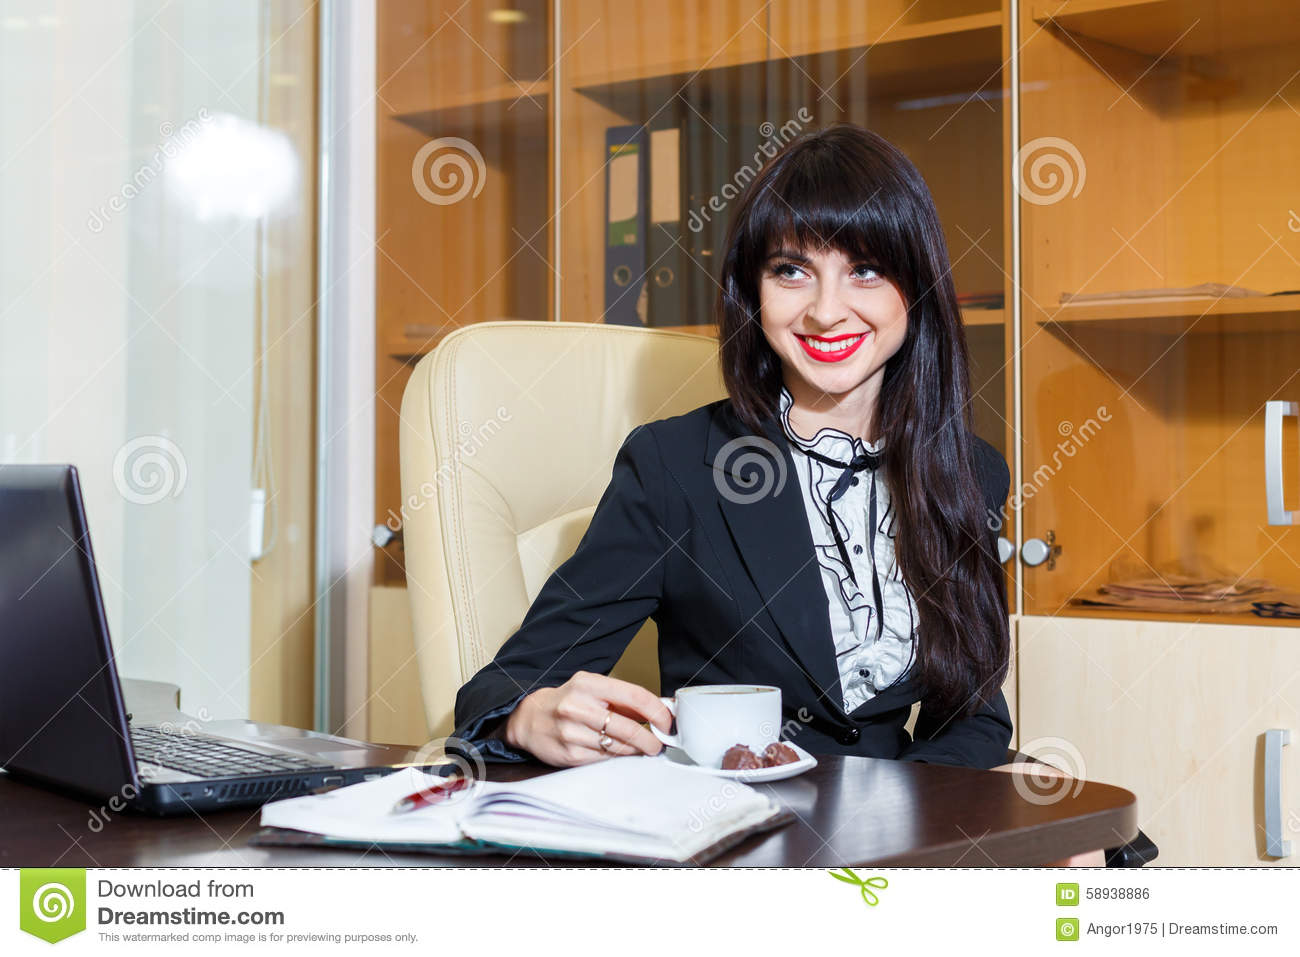 nice smiling woman in office drinking coffee person